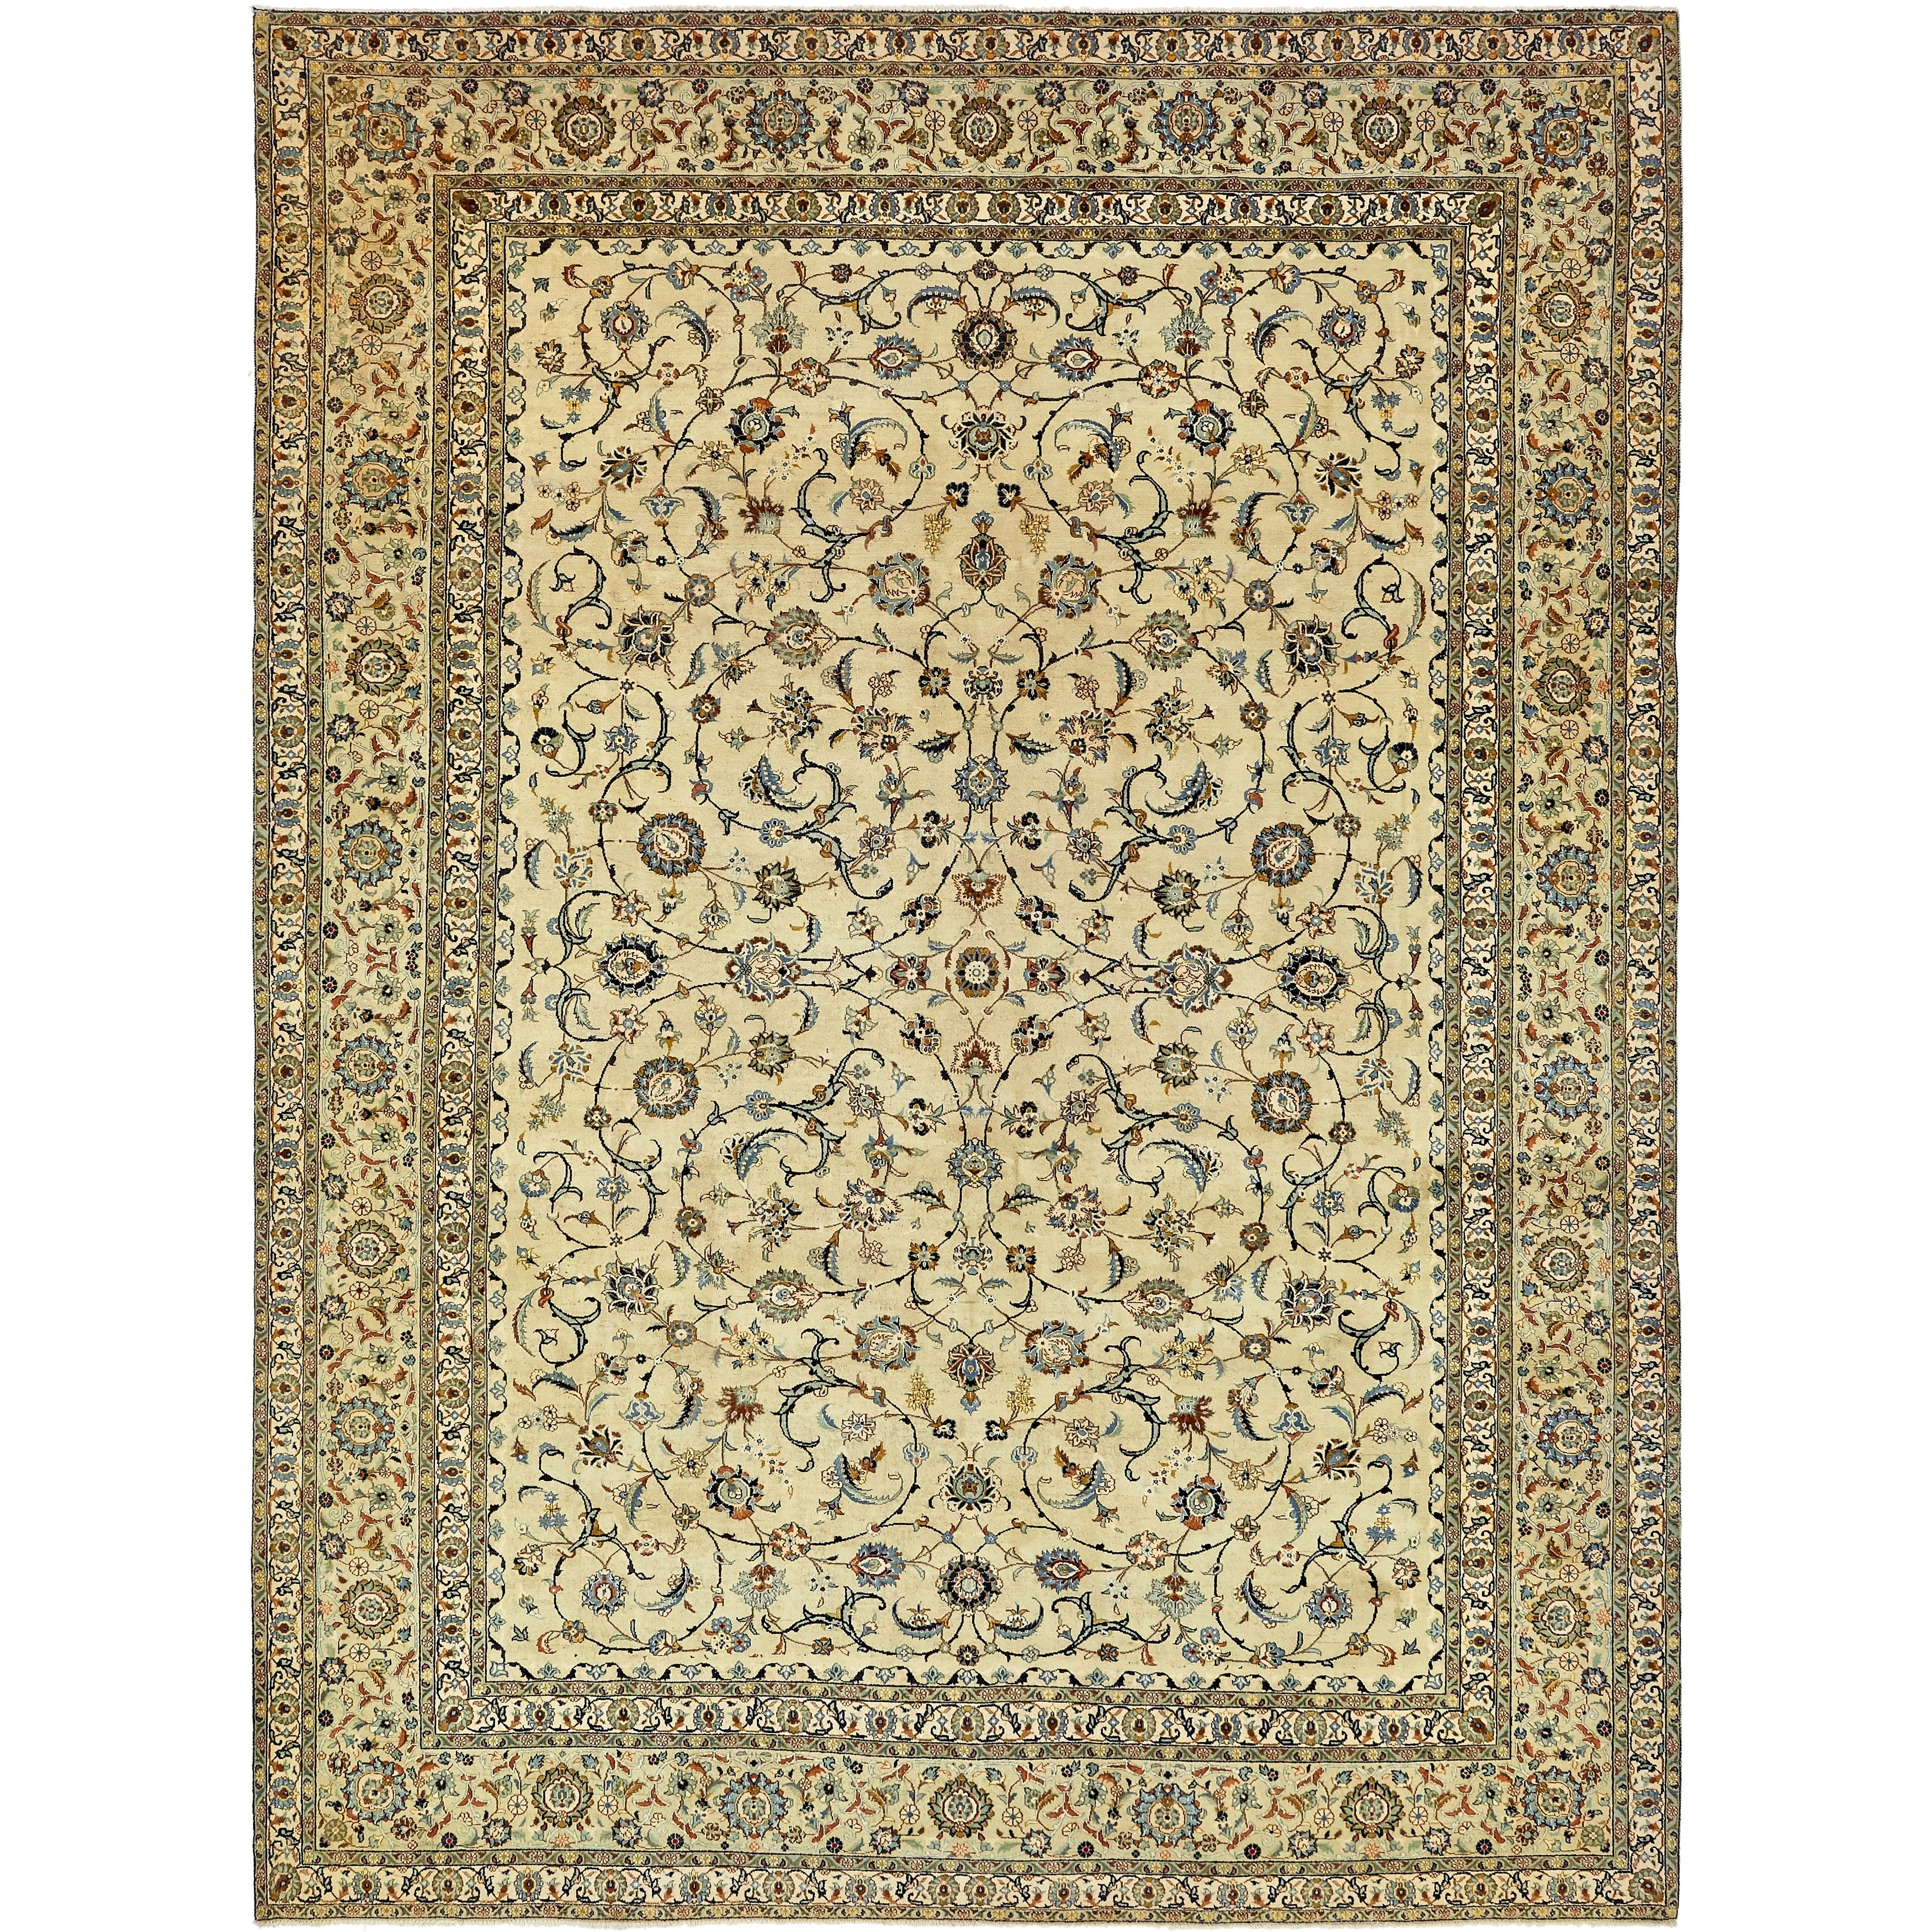 Hand Knotted Kashan Semi Antique Wool Area Rug - 10 2 x 13 6 (LIGHT GREEN - 10 2 x 13 6)